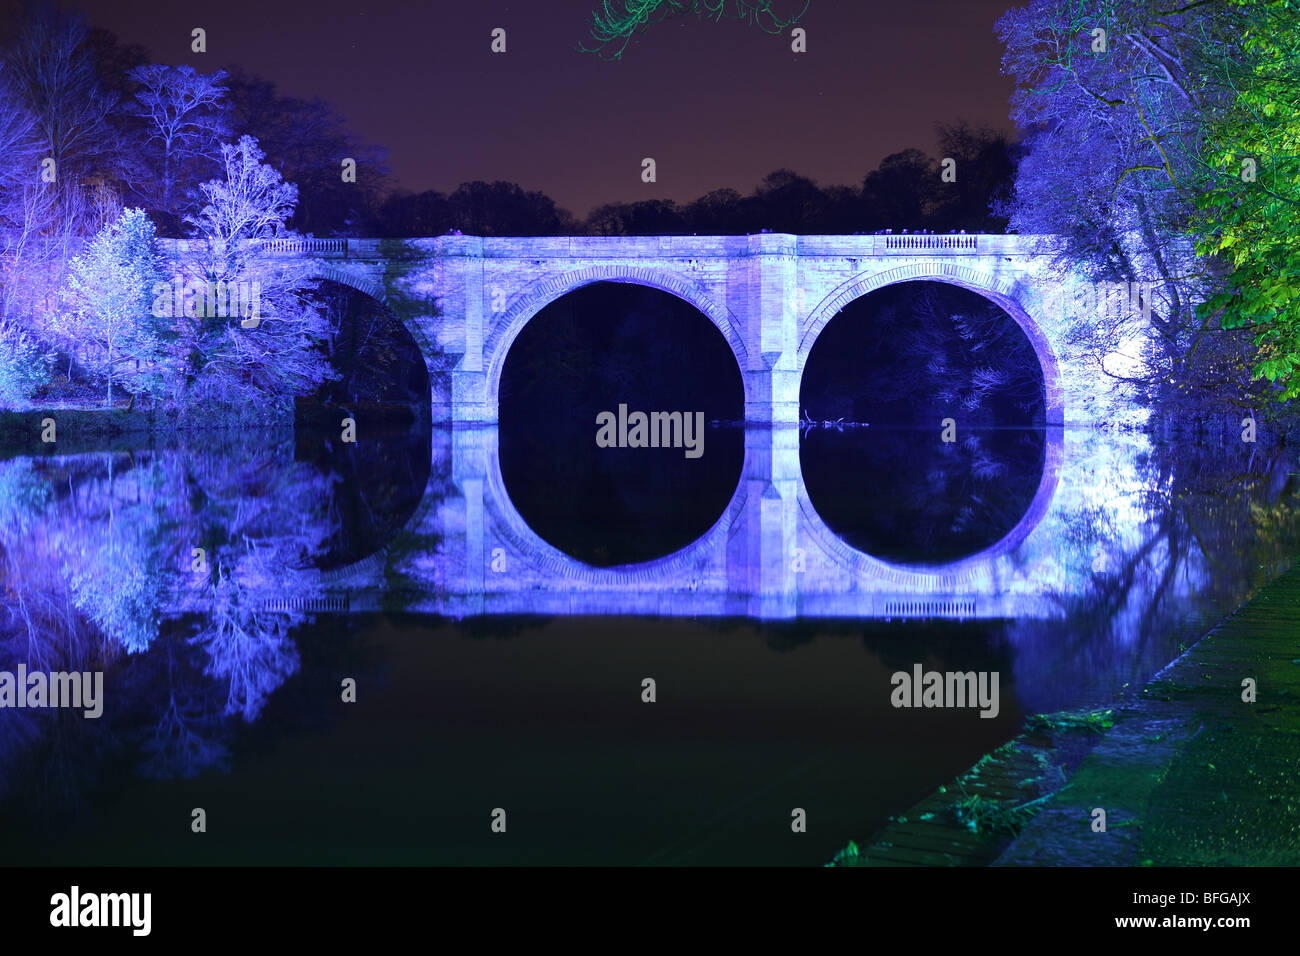 prebends-bridge-durham-uk-illuminated-fo